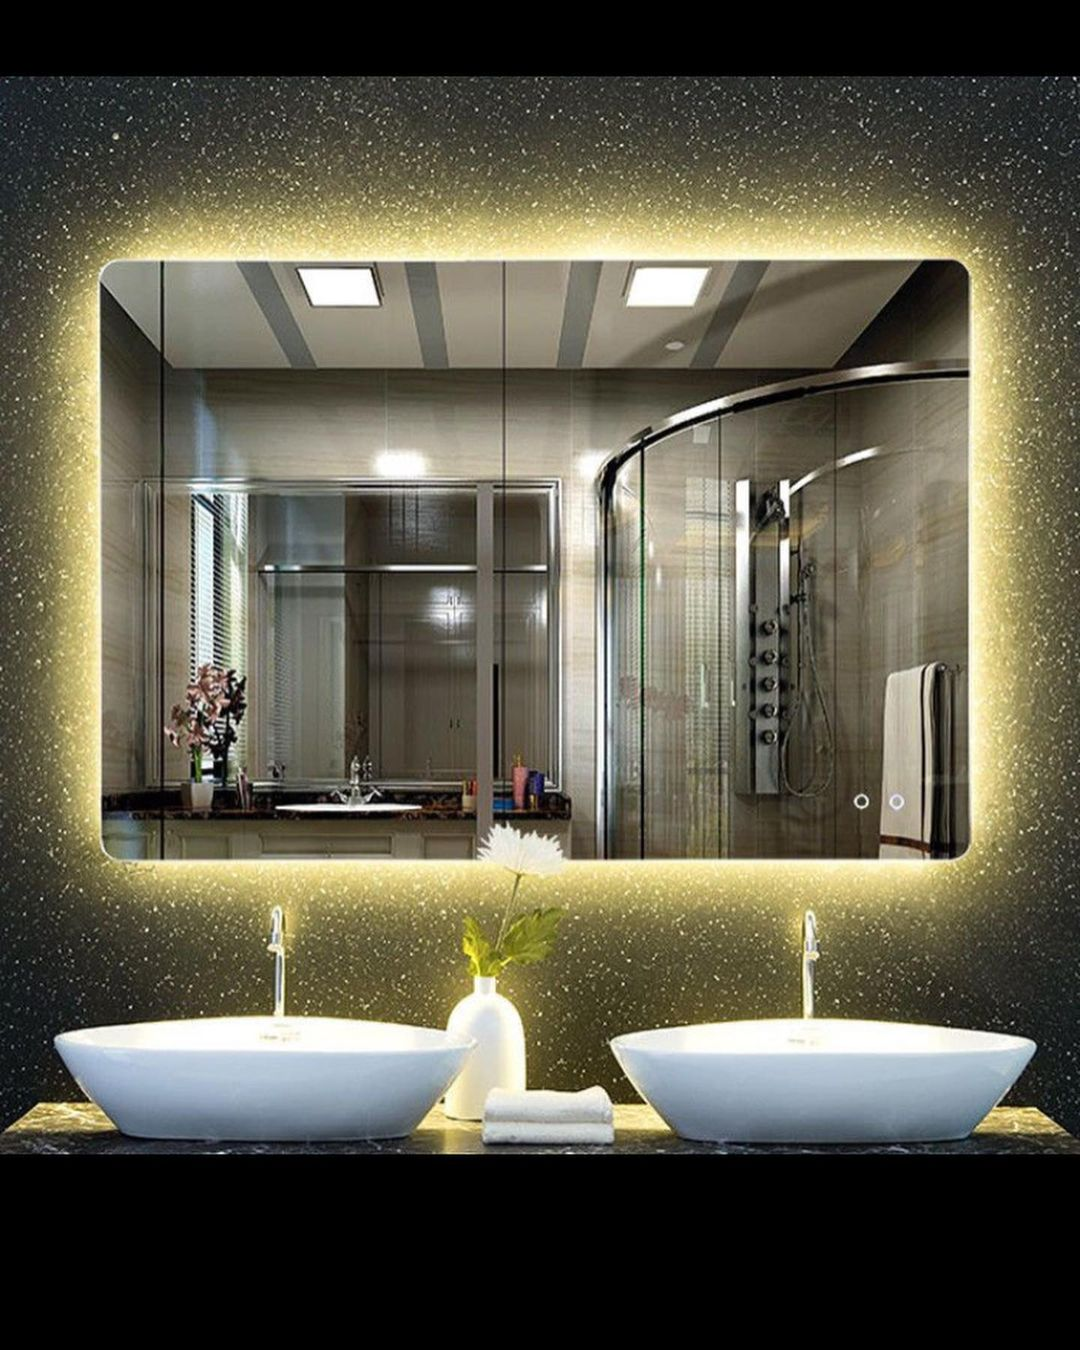 Hanging Mirrors and other mirror designs (8)